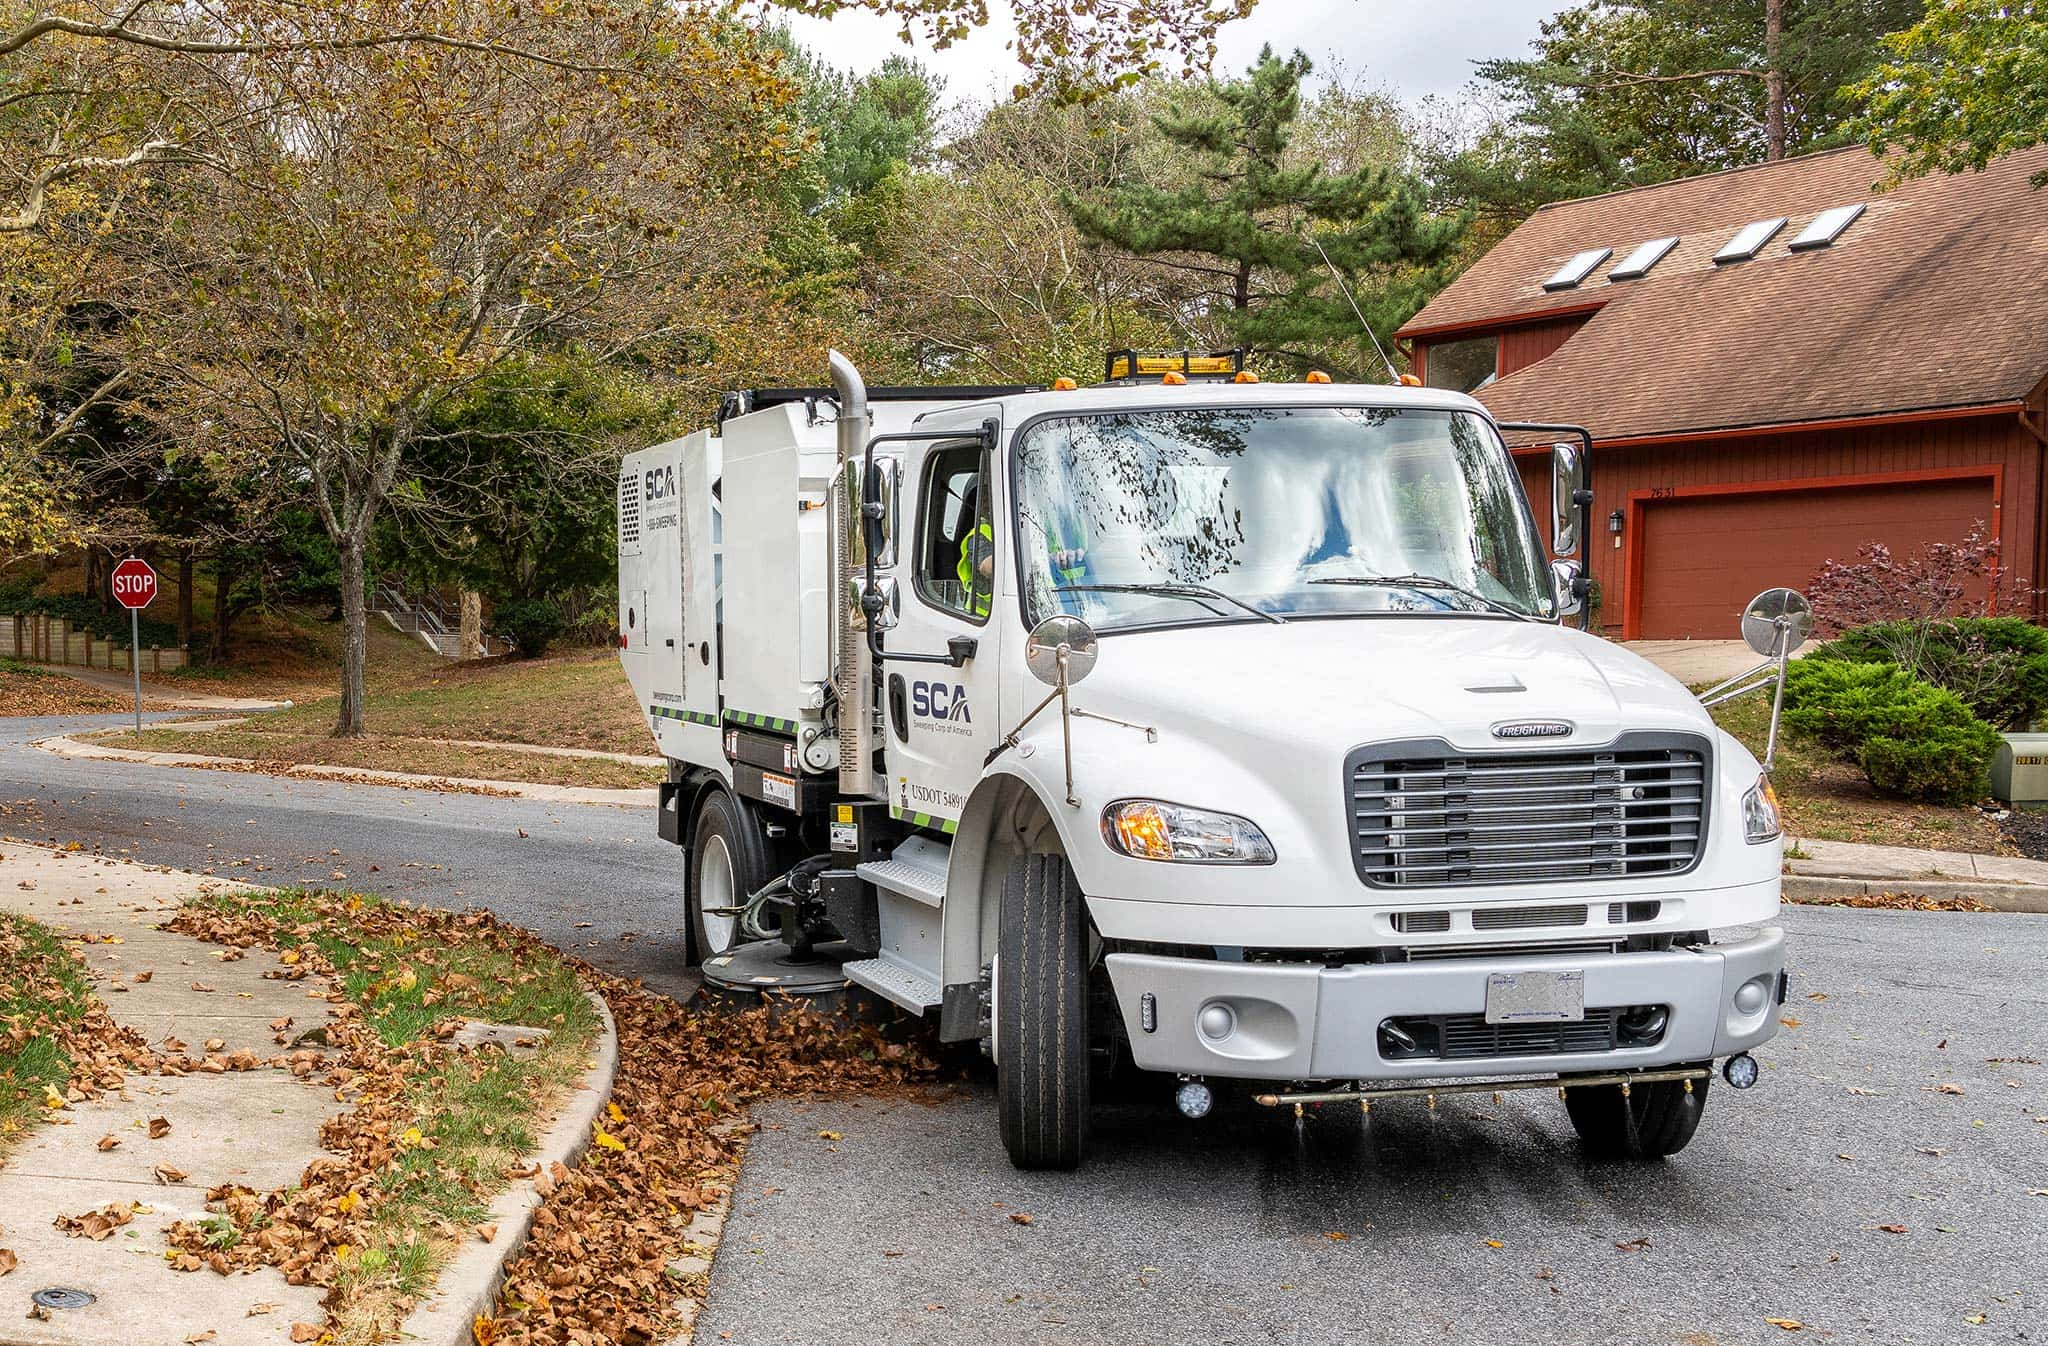 A sweeping truck cleaning leaves in a residential neighborhood